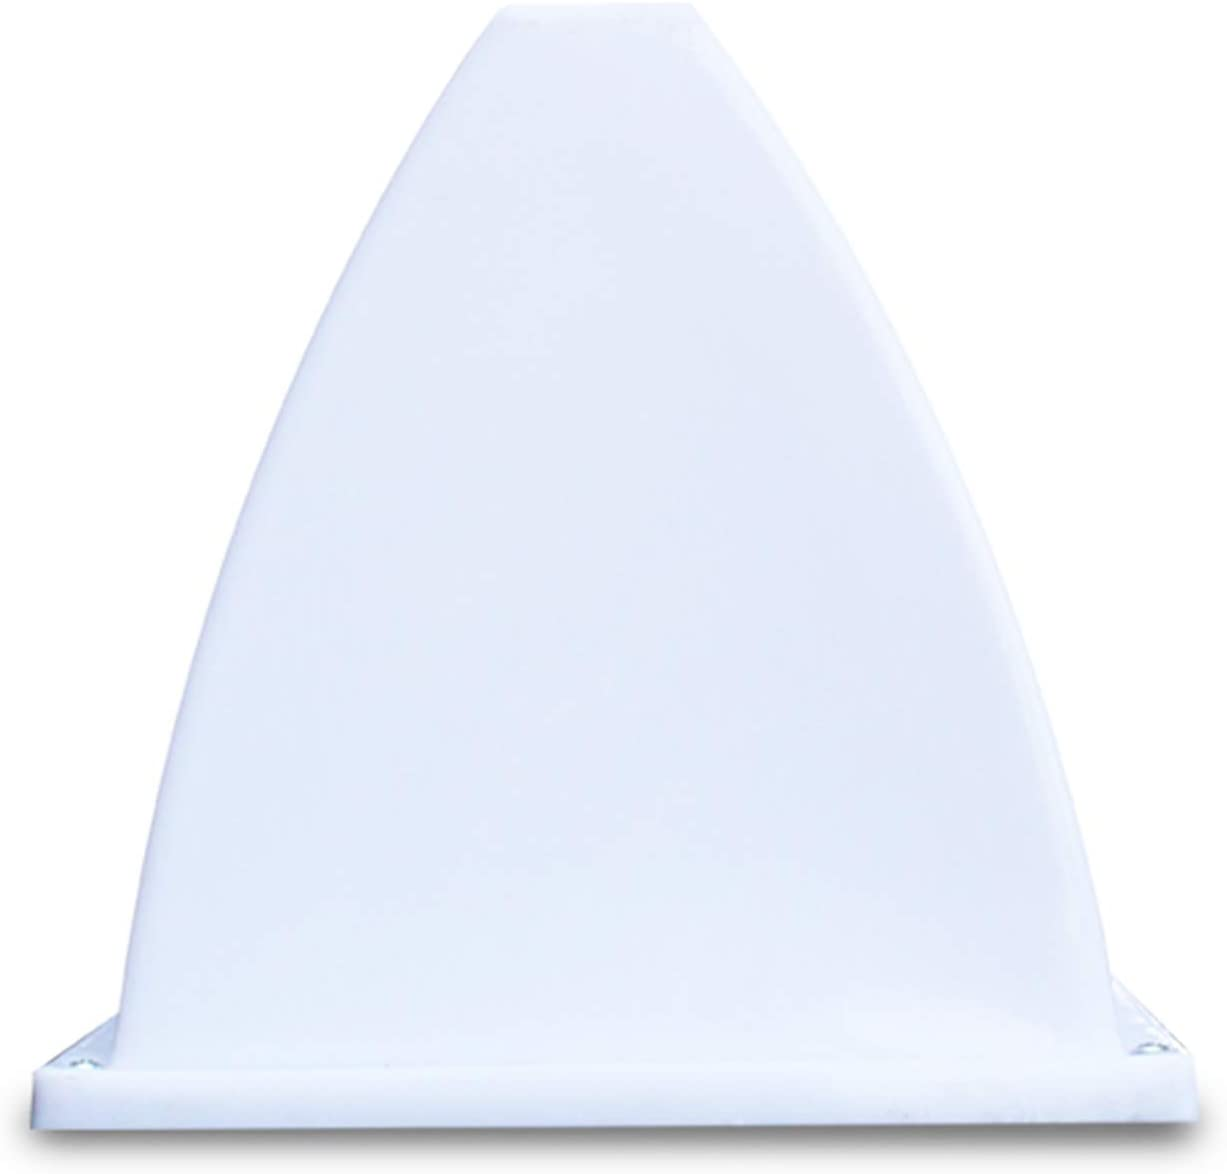 Next Level Signs Blank Car Top Lighted Signs (Large)